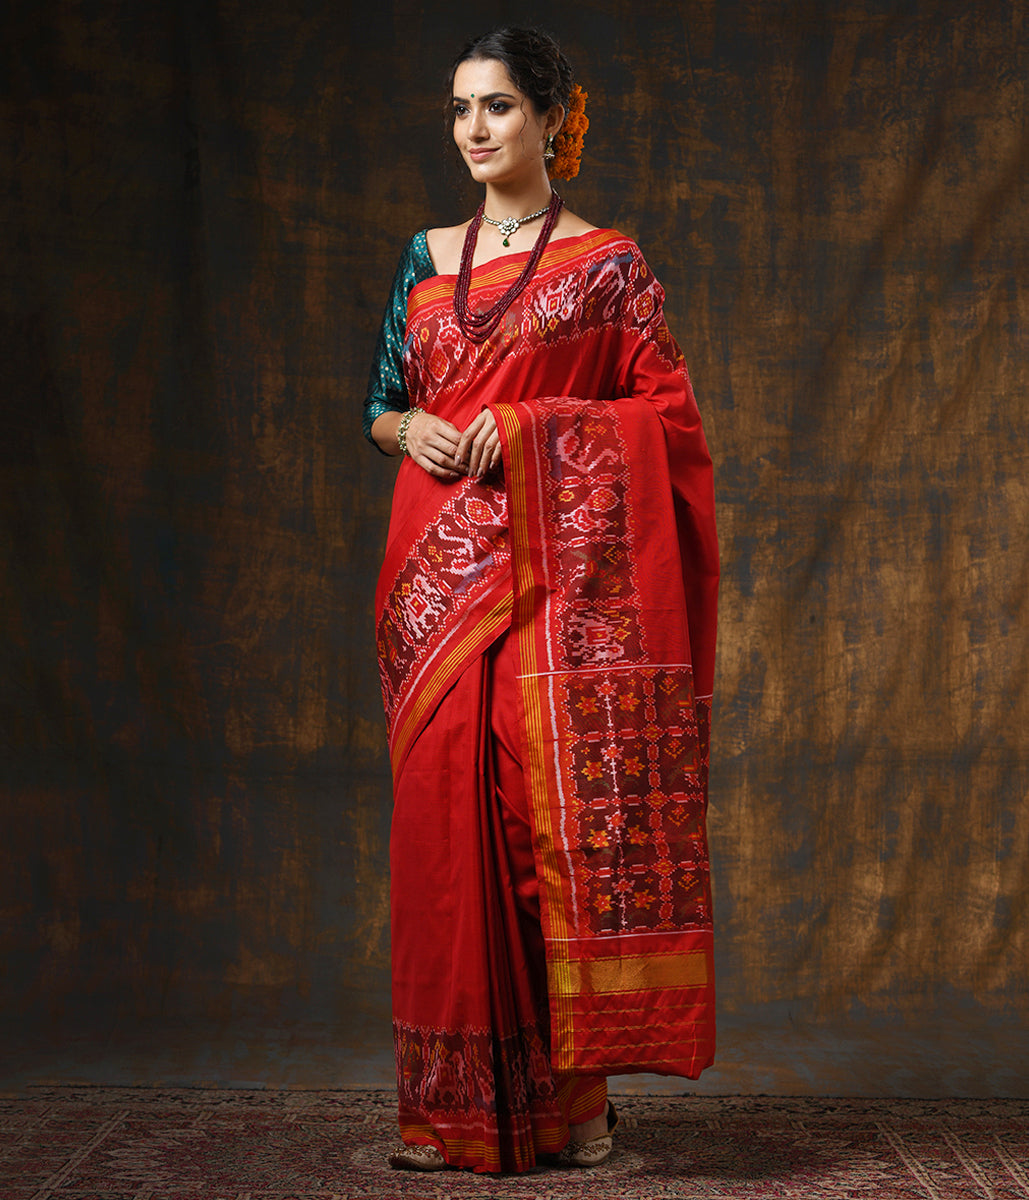 Handwoven Green and Red Gujarat Patola Saree with Elephants